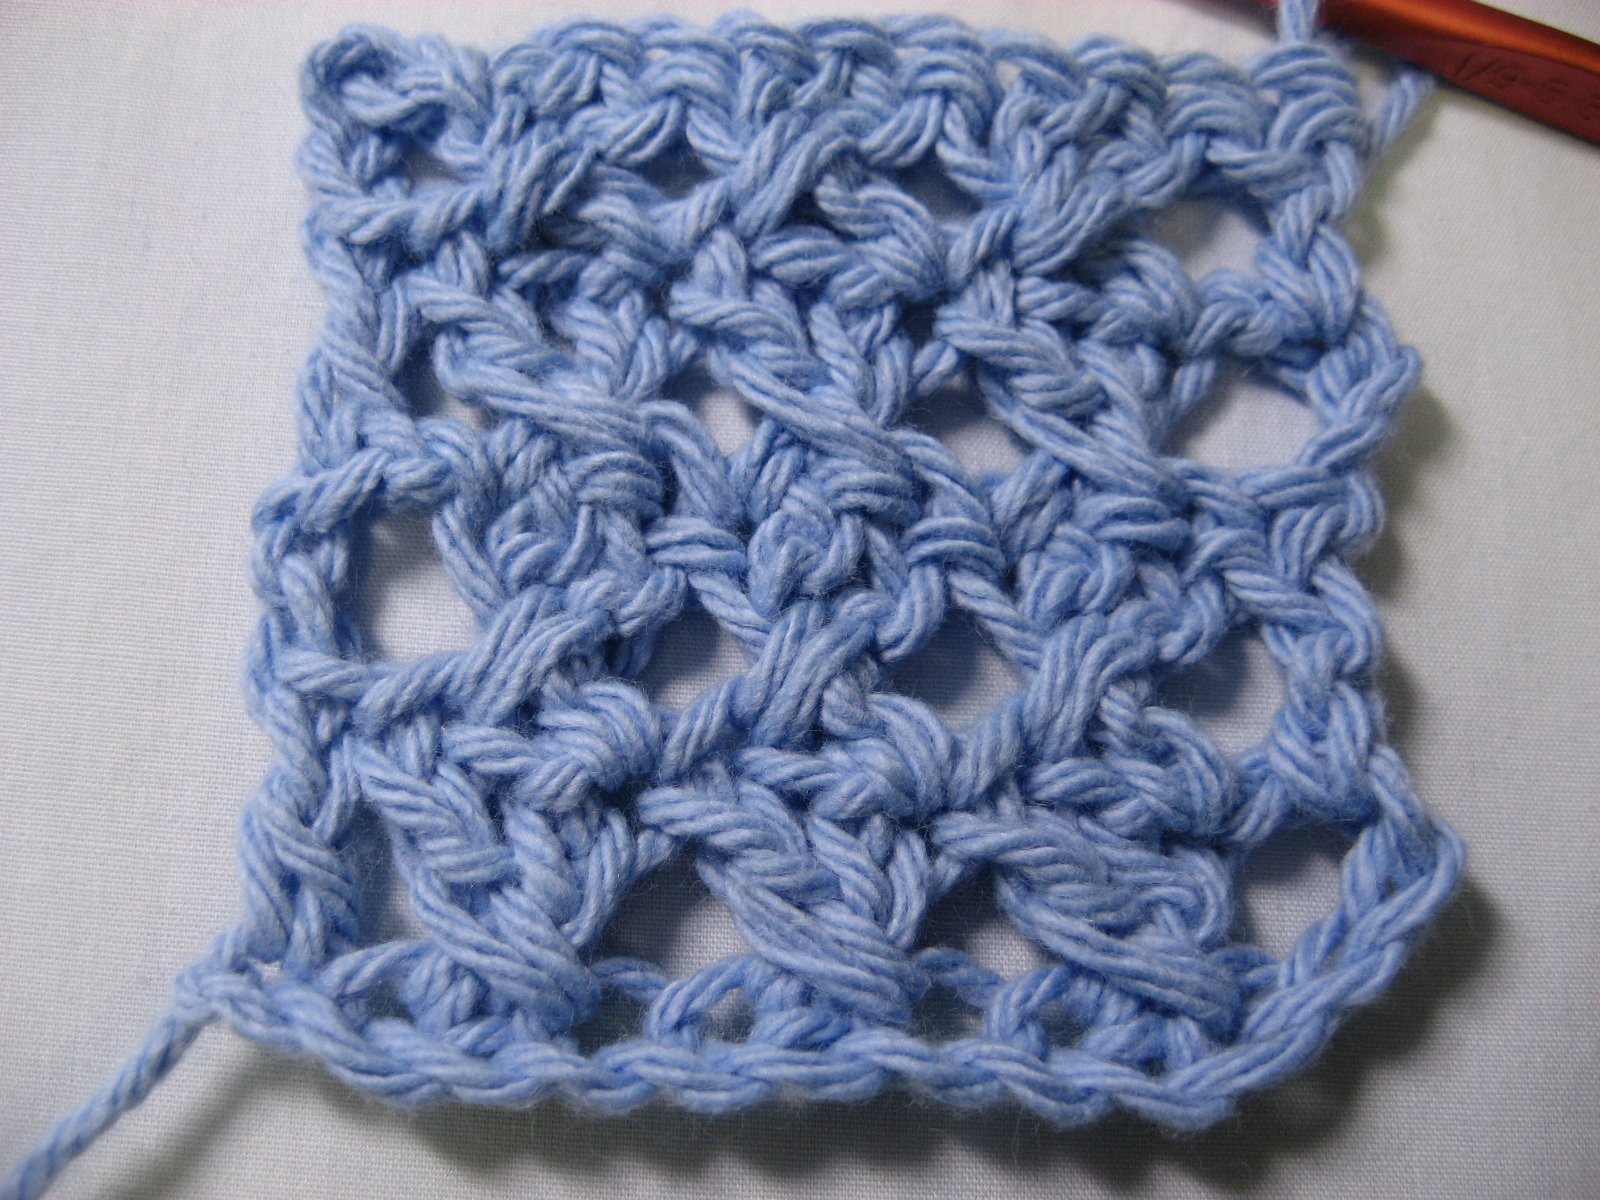 Crocheting Double Stitch : double crochet pattern only uses two basic stitches, the chain stitch ...